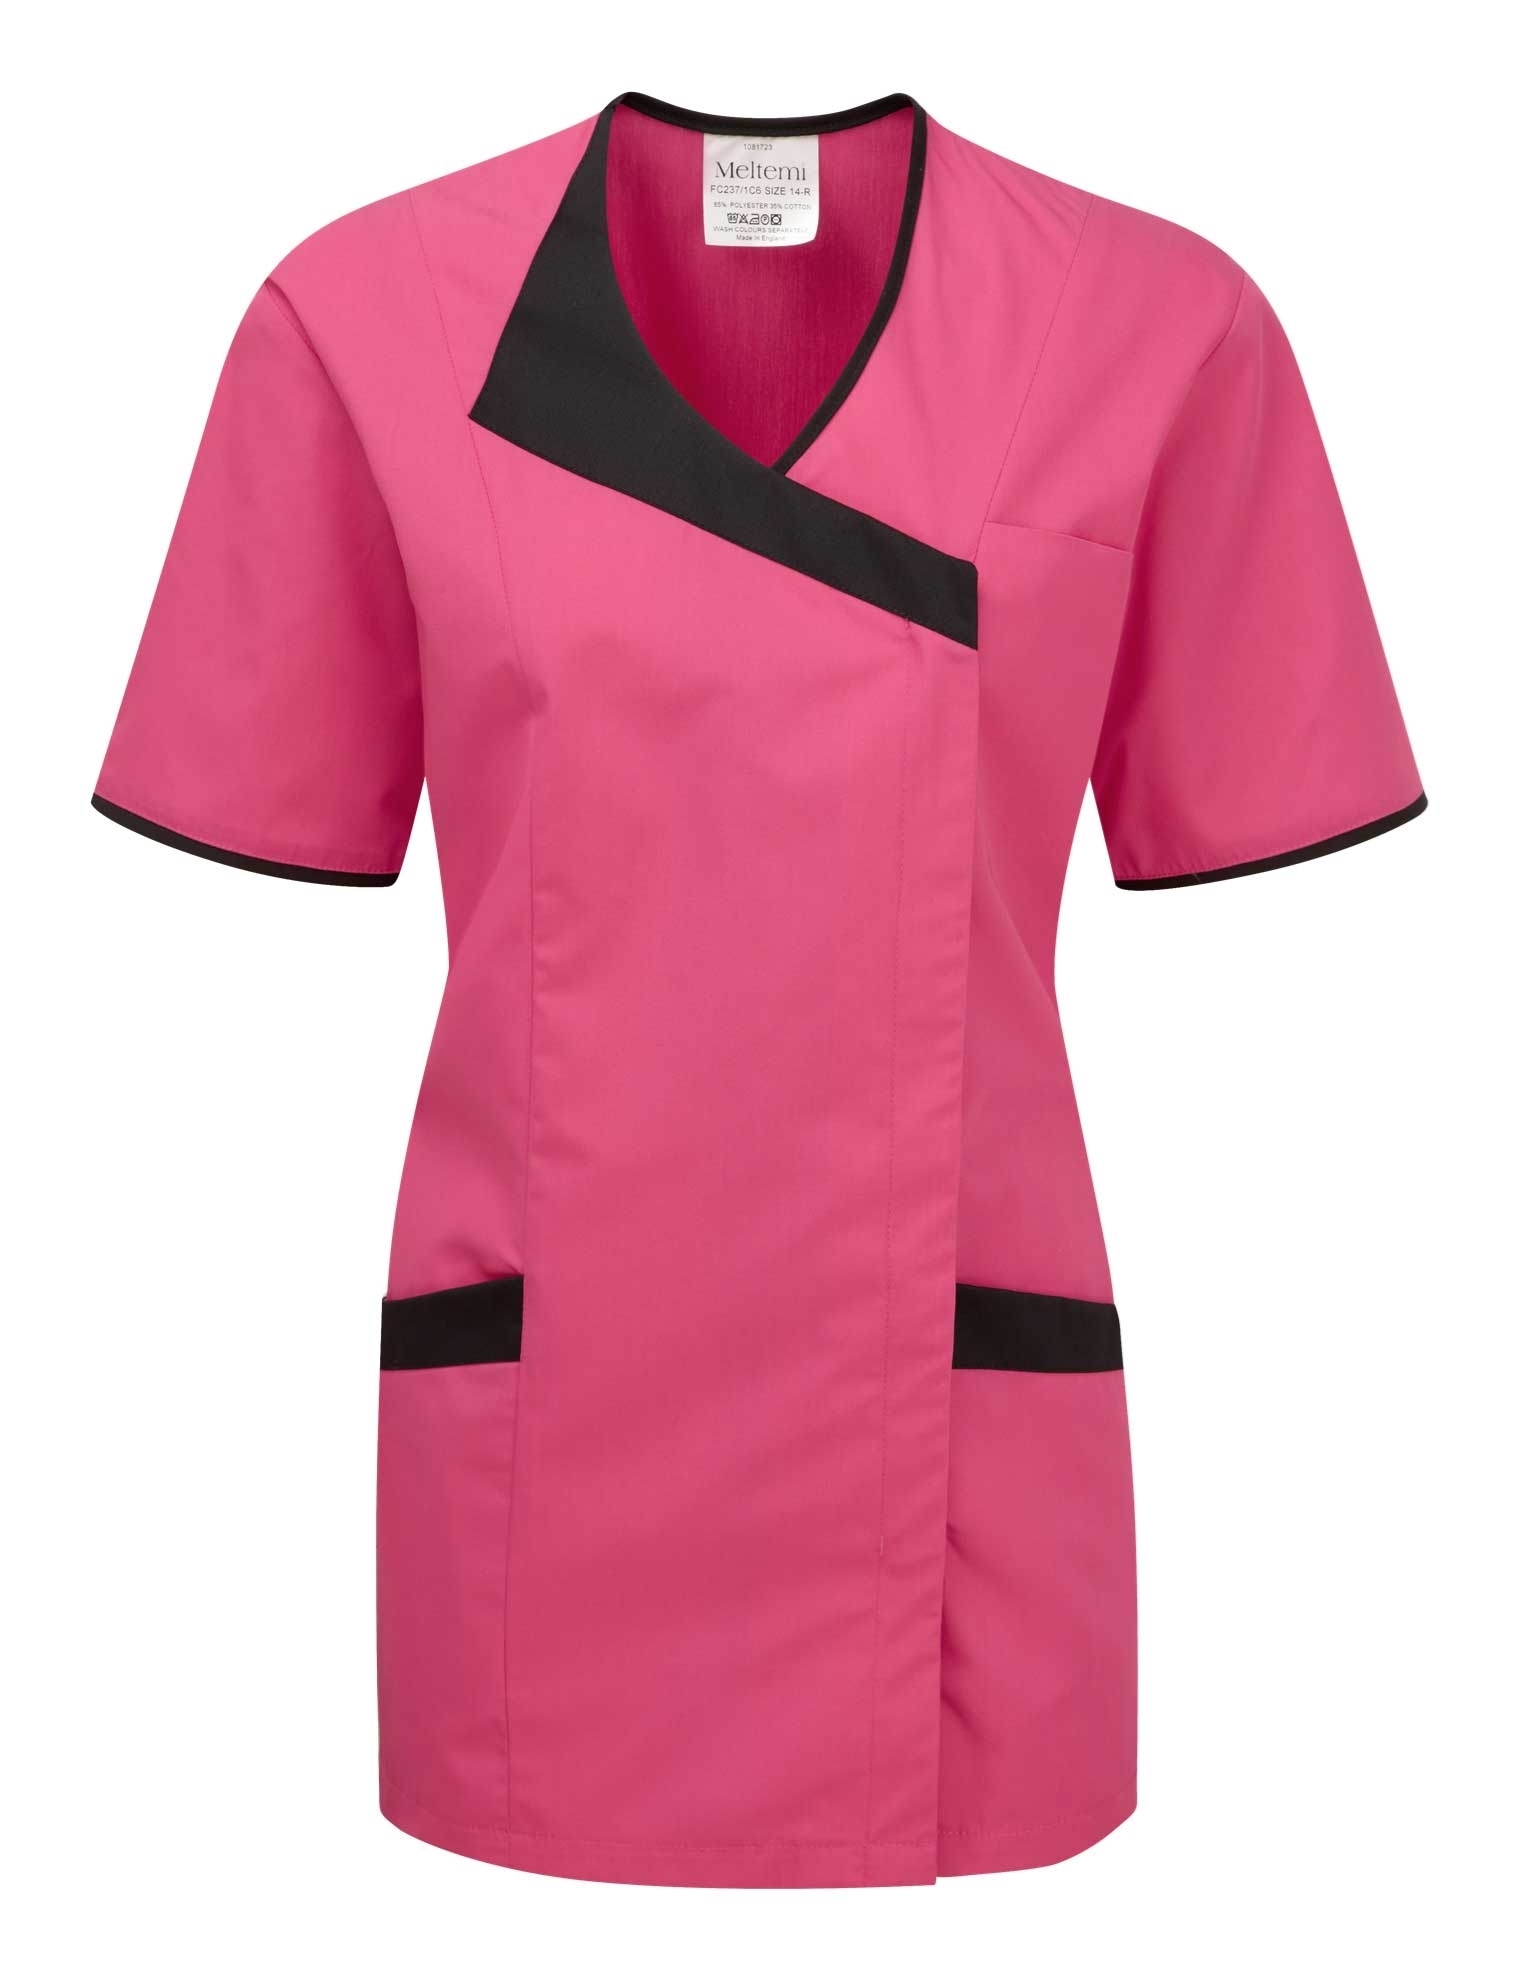 Picture of Asymmetric Tunic - Hot Pink/Black